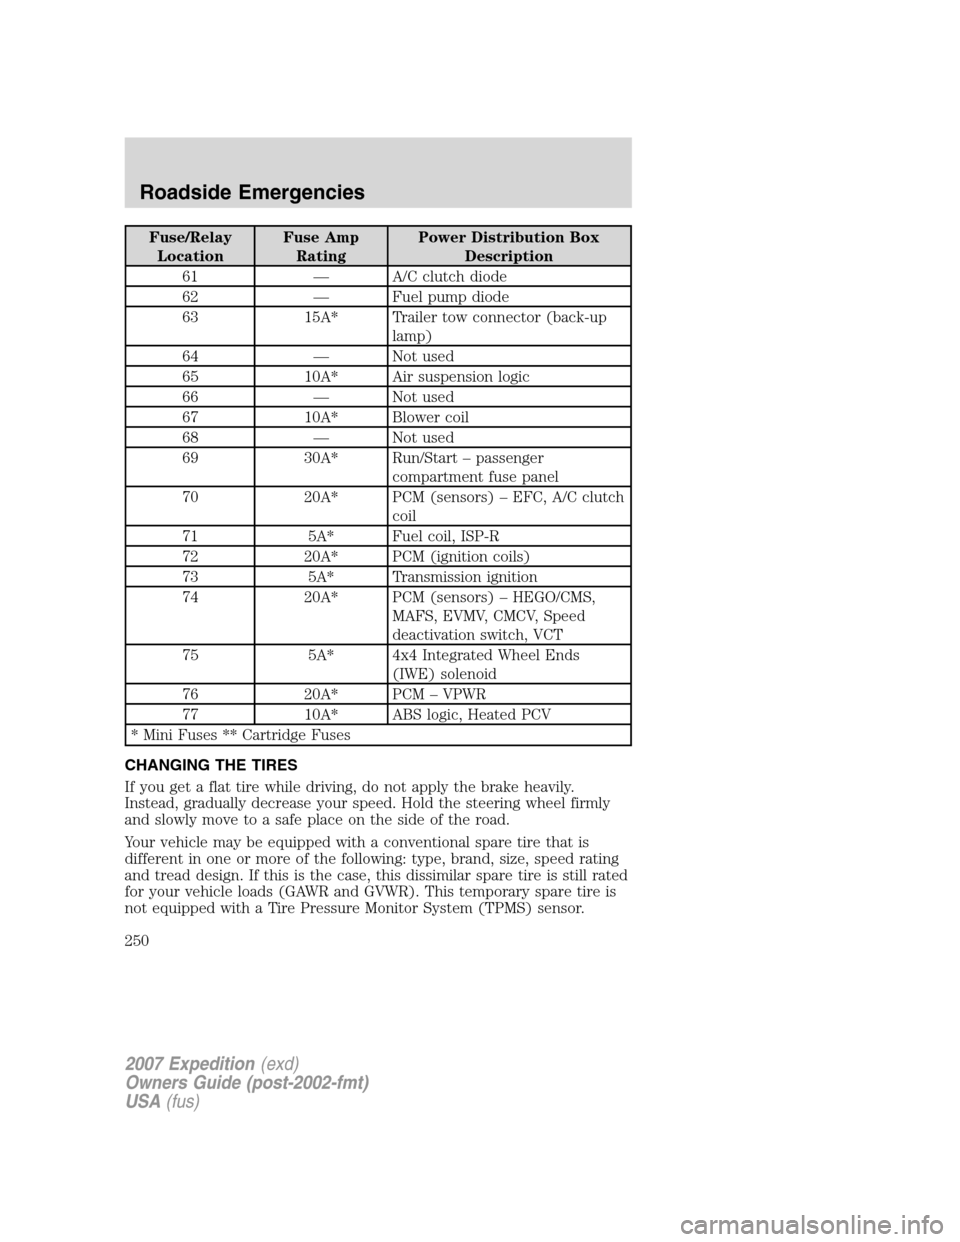 FORD EXPEDITION 2007 3.G Owners Manual, Page 250. Fuse/Relay